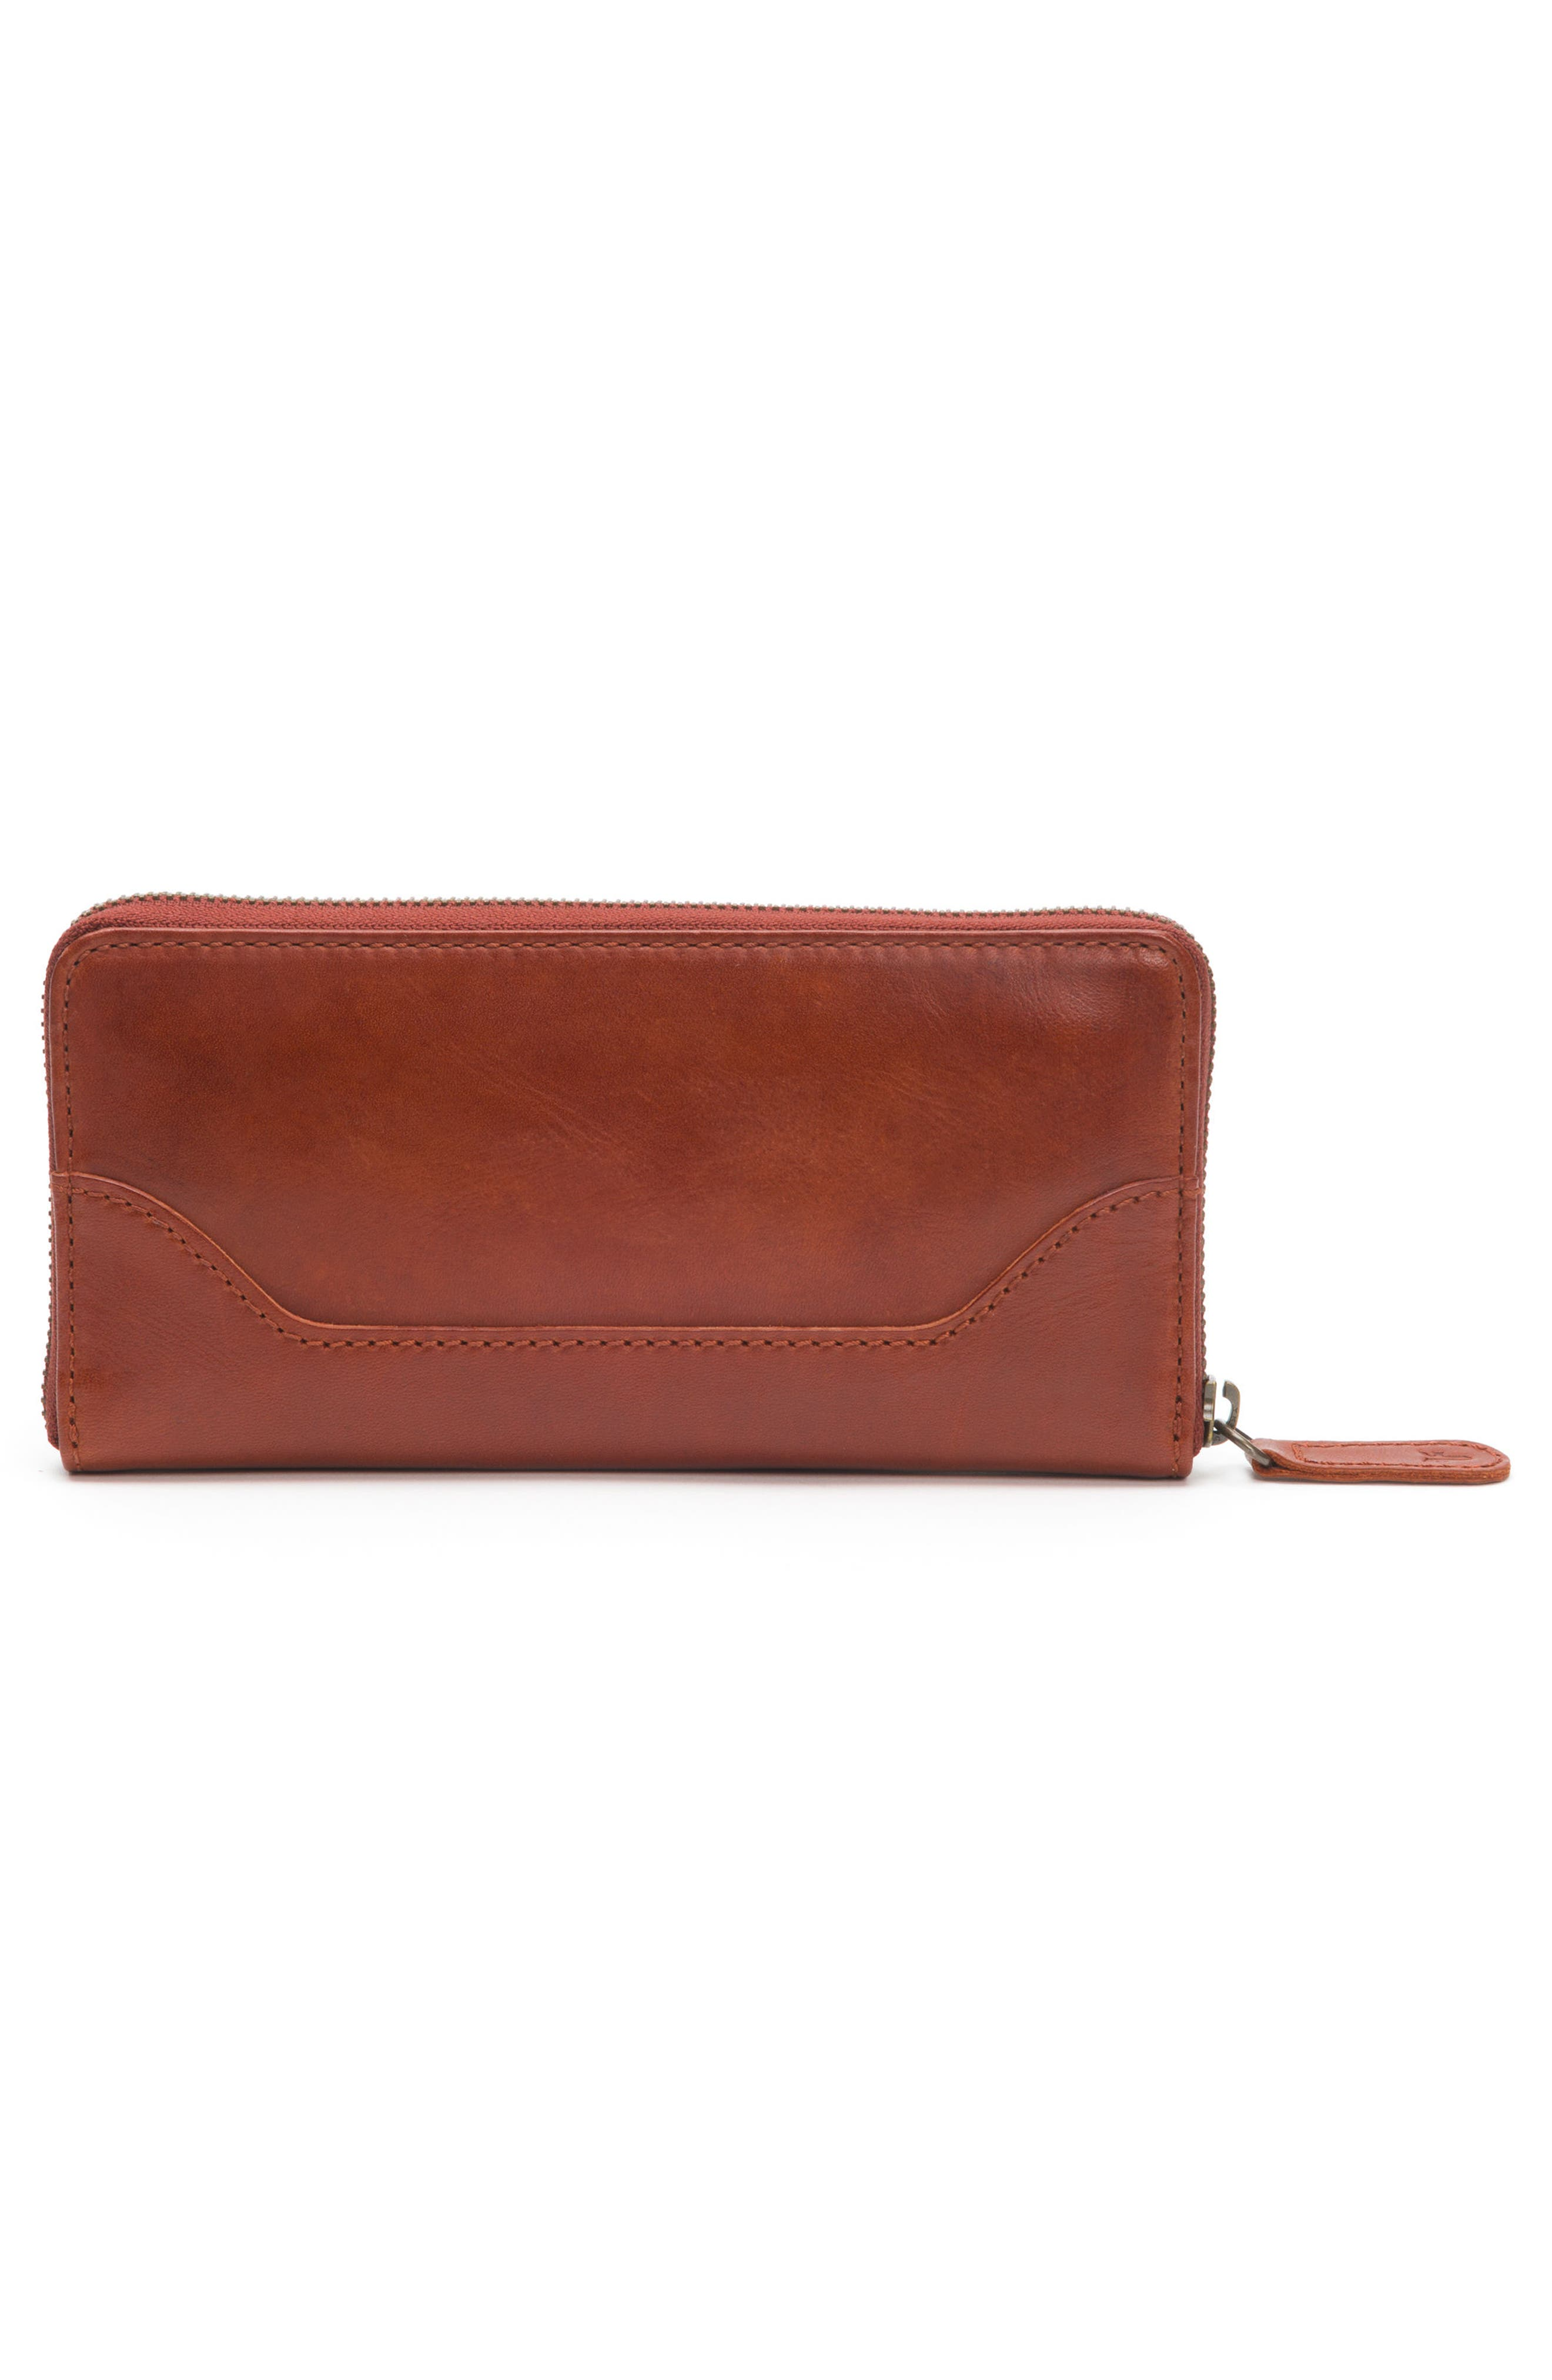 Melissa Leather Wallet,                             Alternate thumbnail 4, color,                             Red Clay